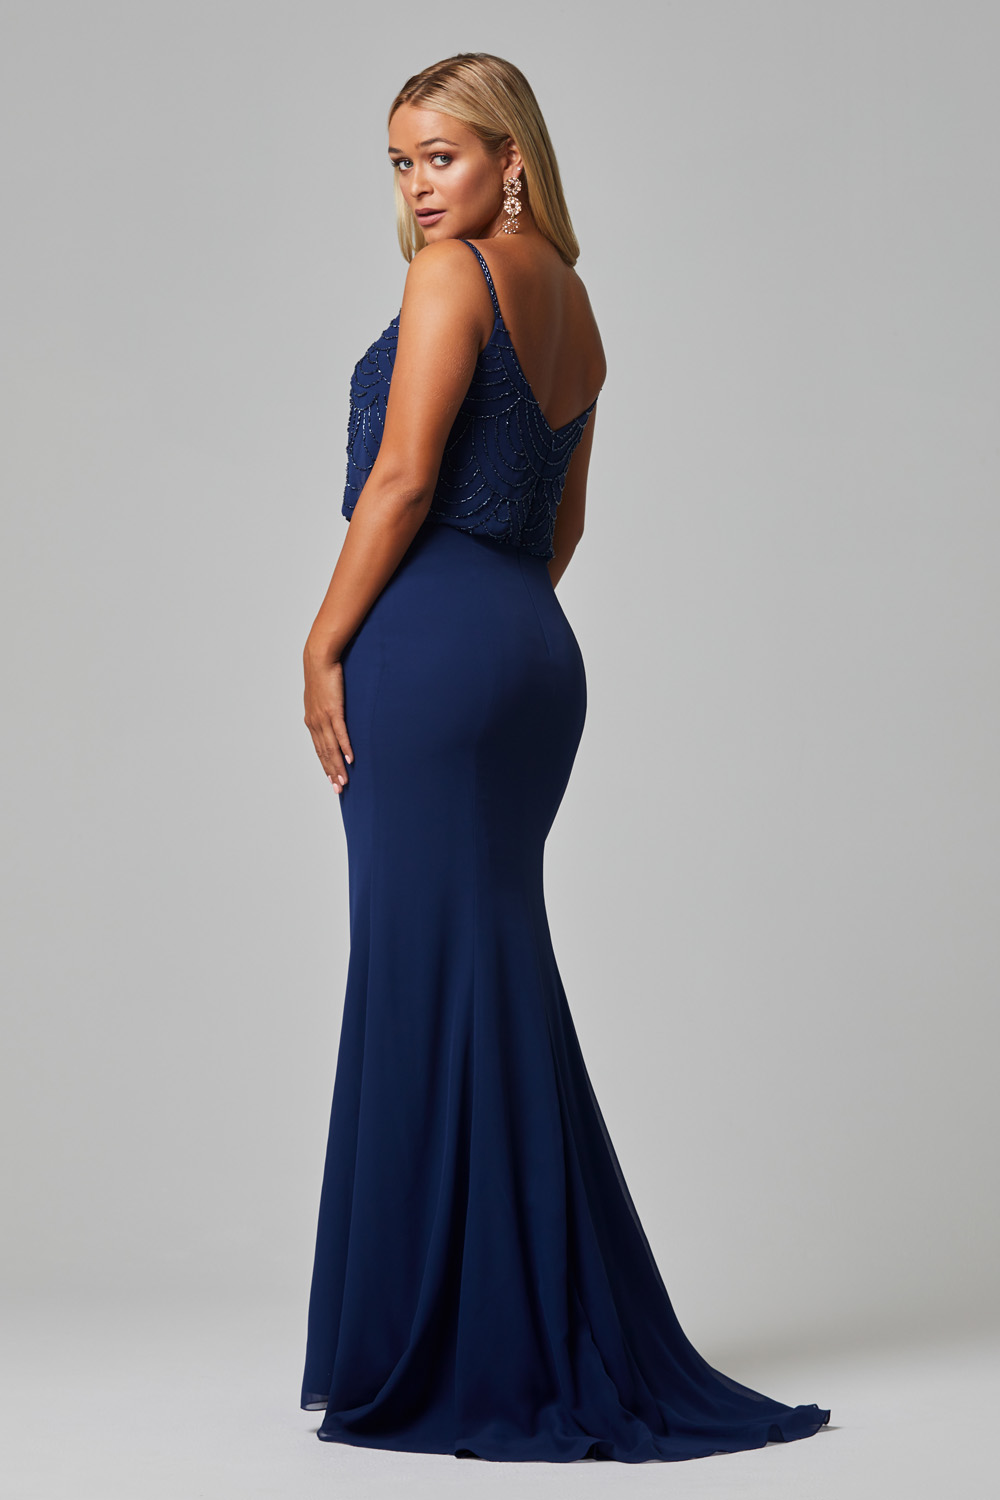 Valencia Bridesmaid Dress navy back